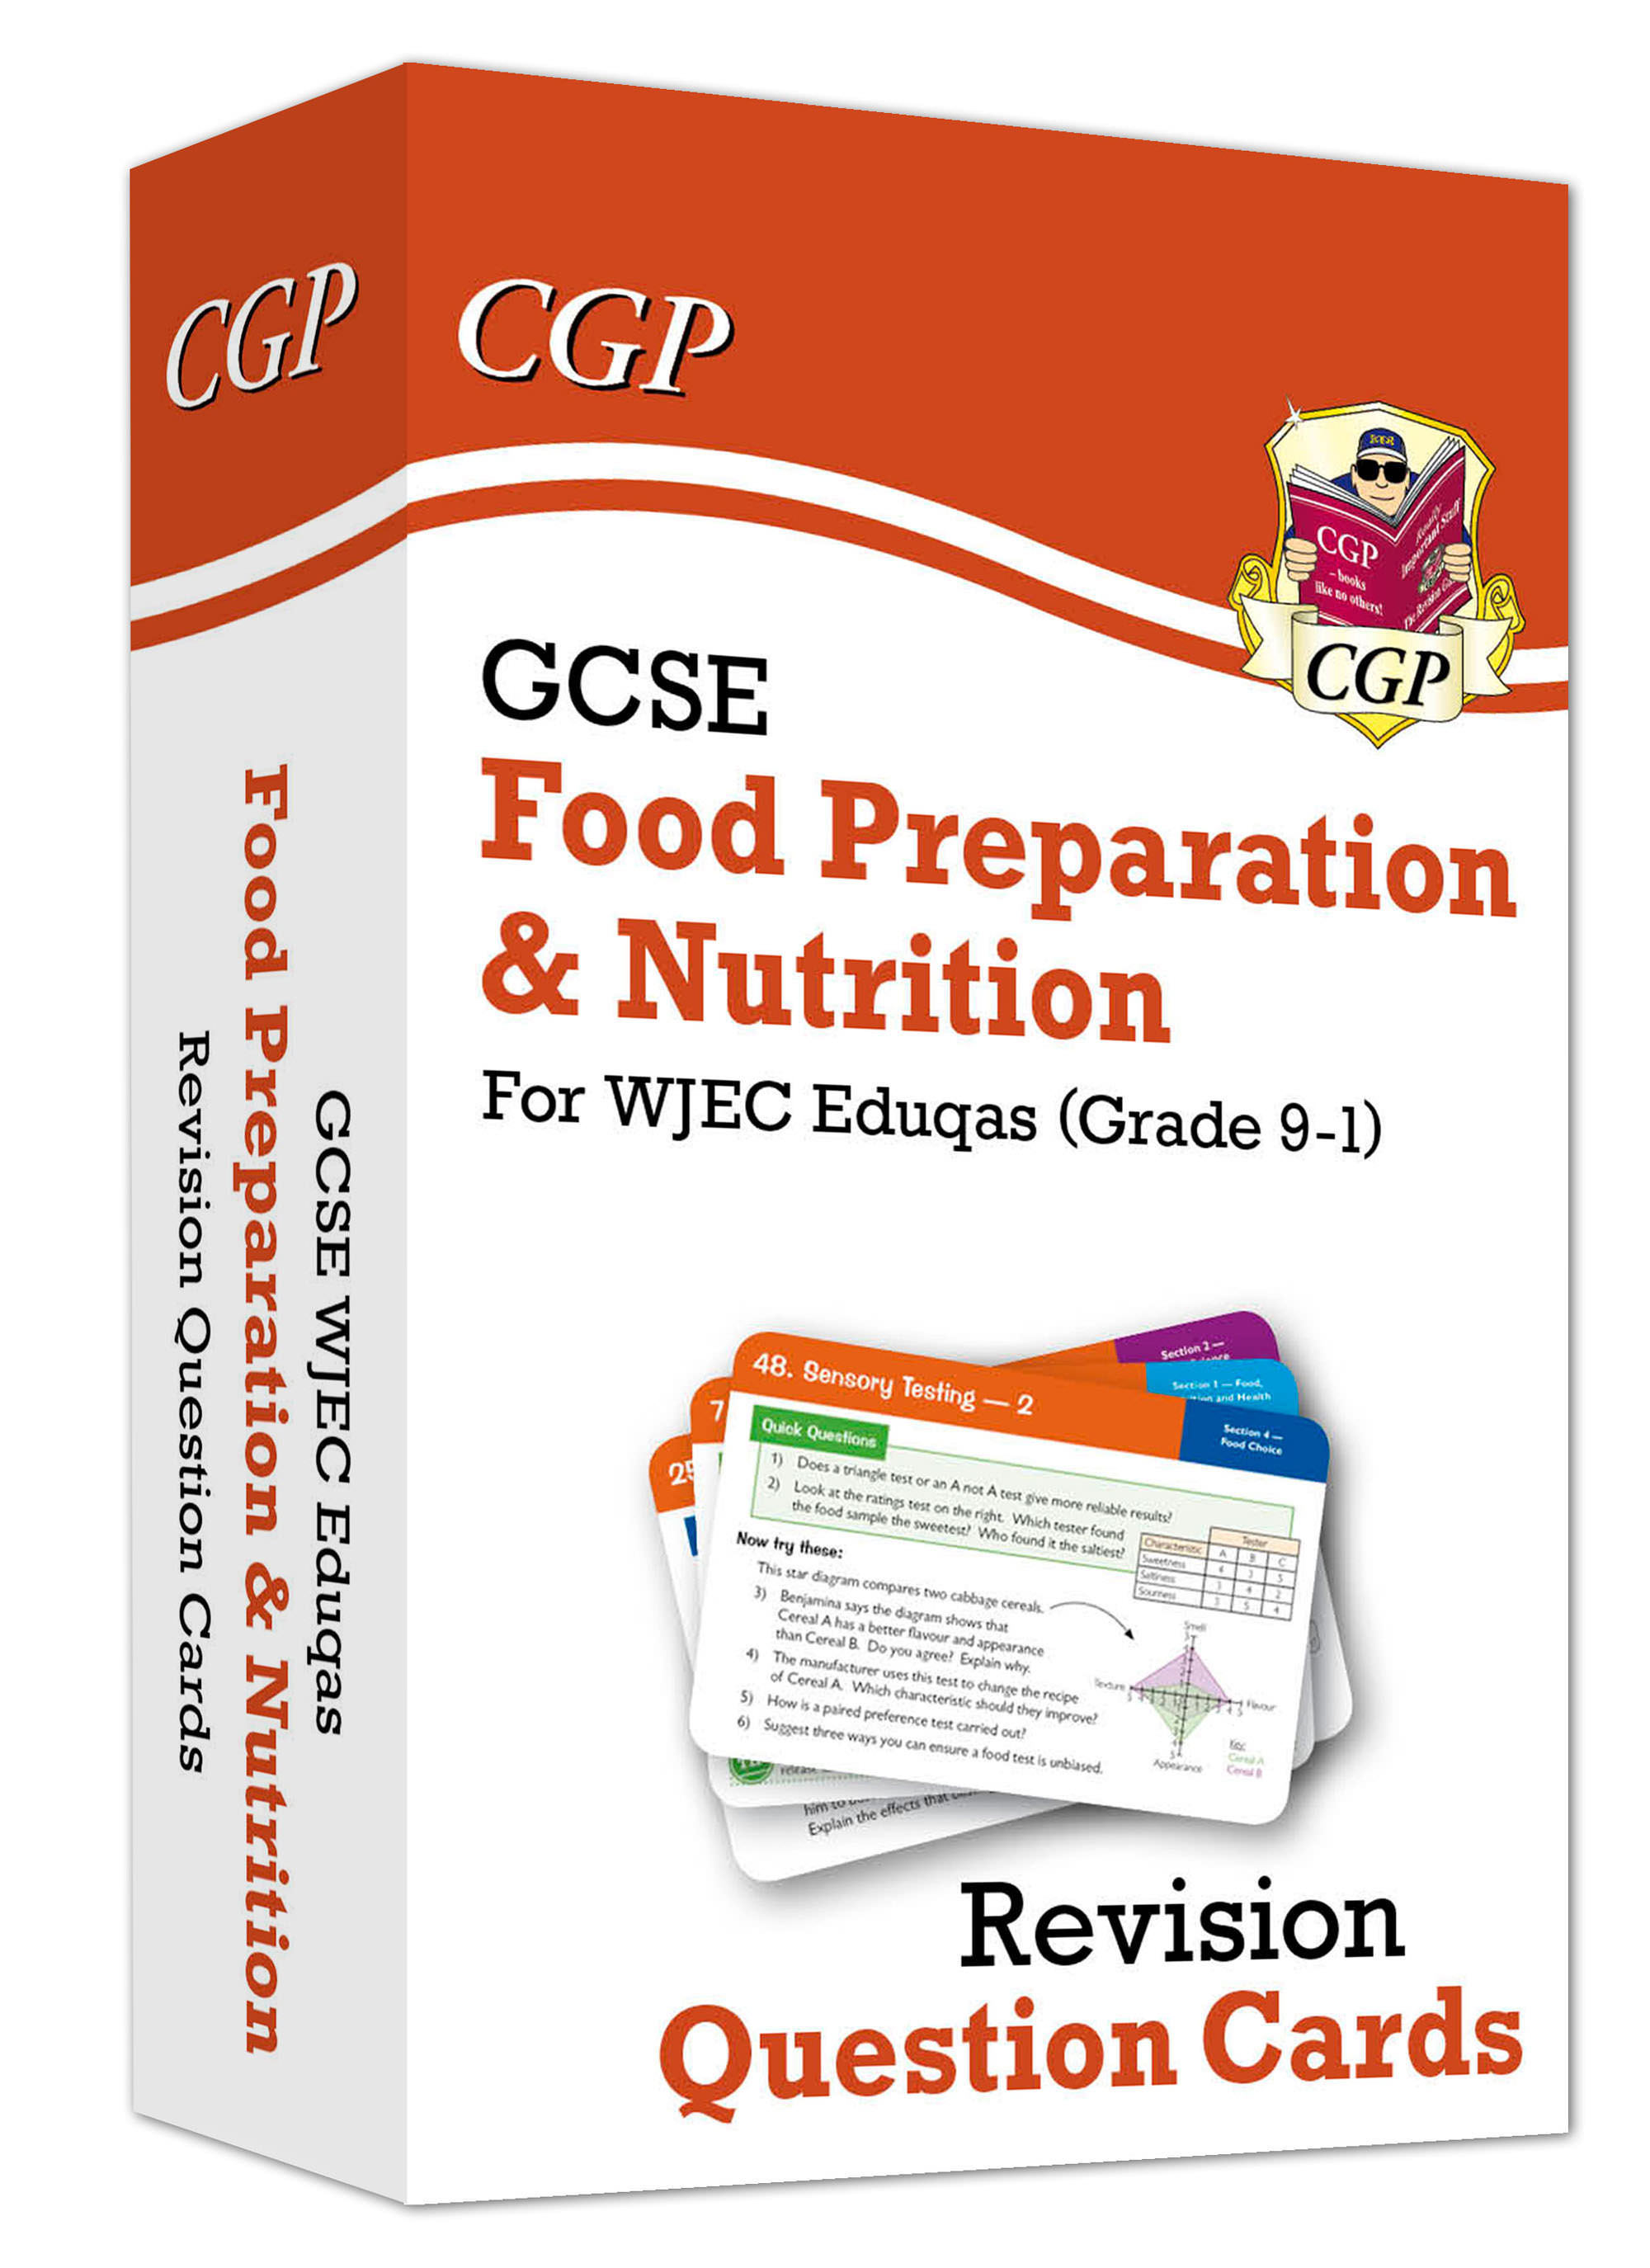 FNWF41 - New Grade 9-1 GCSE Food Preparation & Nutrition WJEC Eduqas Revision Question Cards